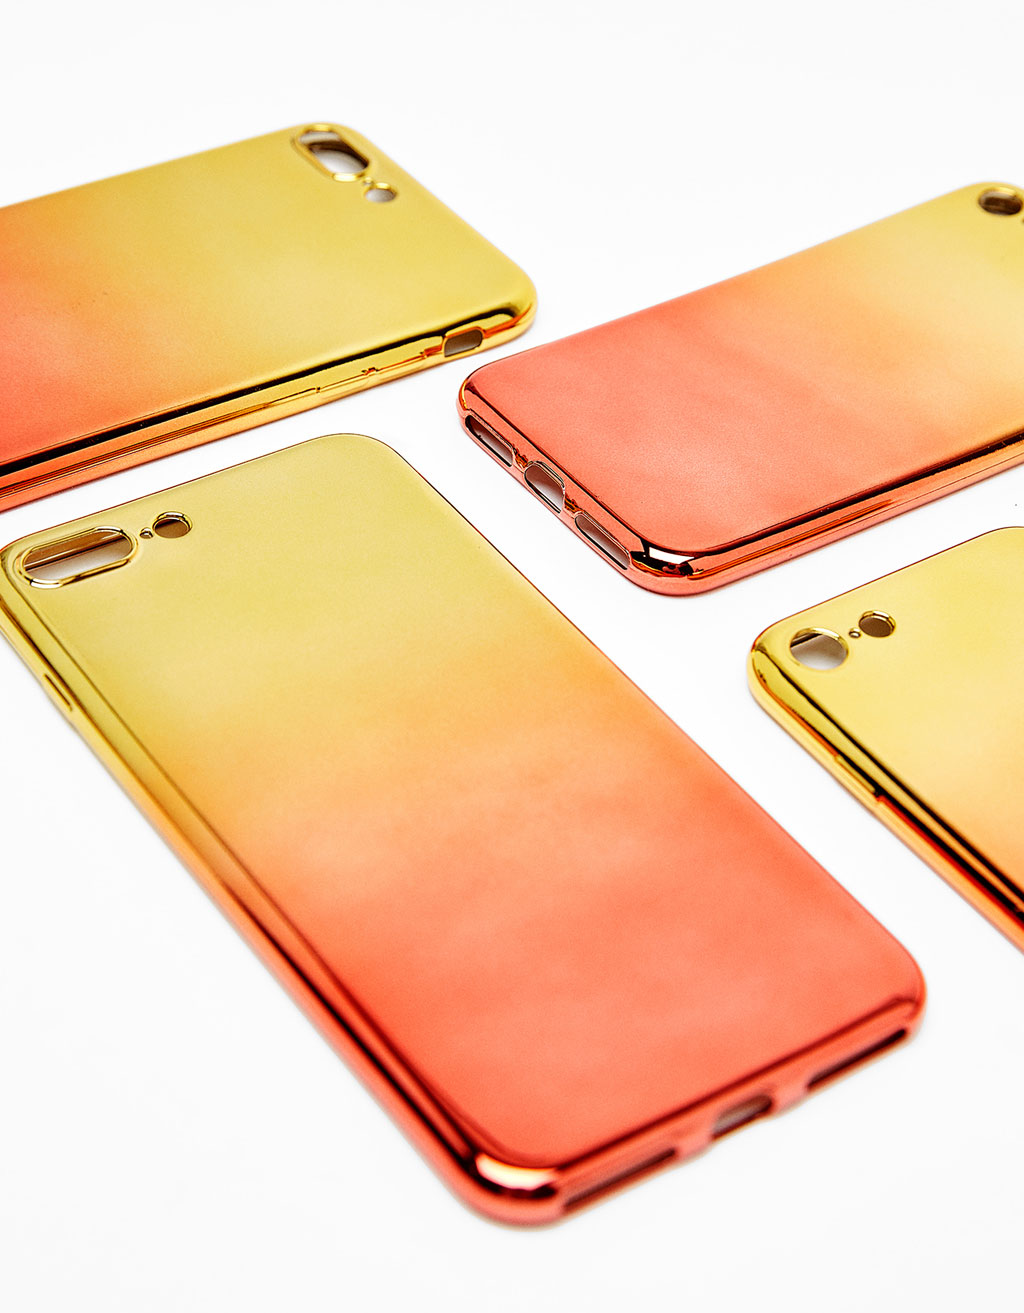 Ombré iPhone 6 Plus case